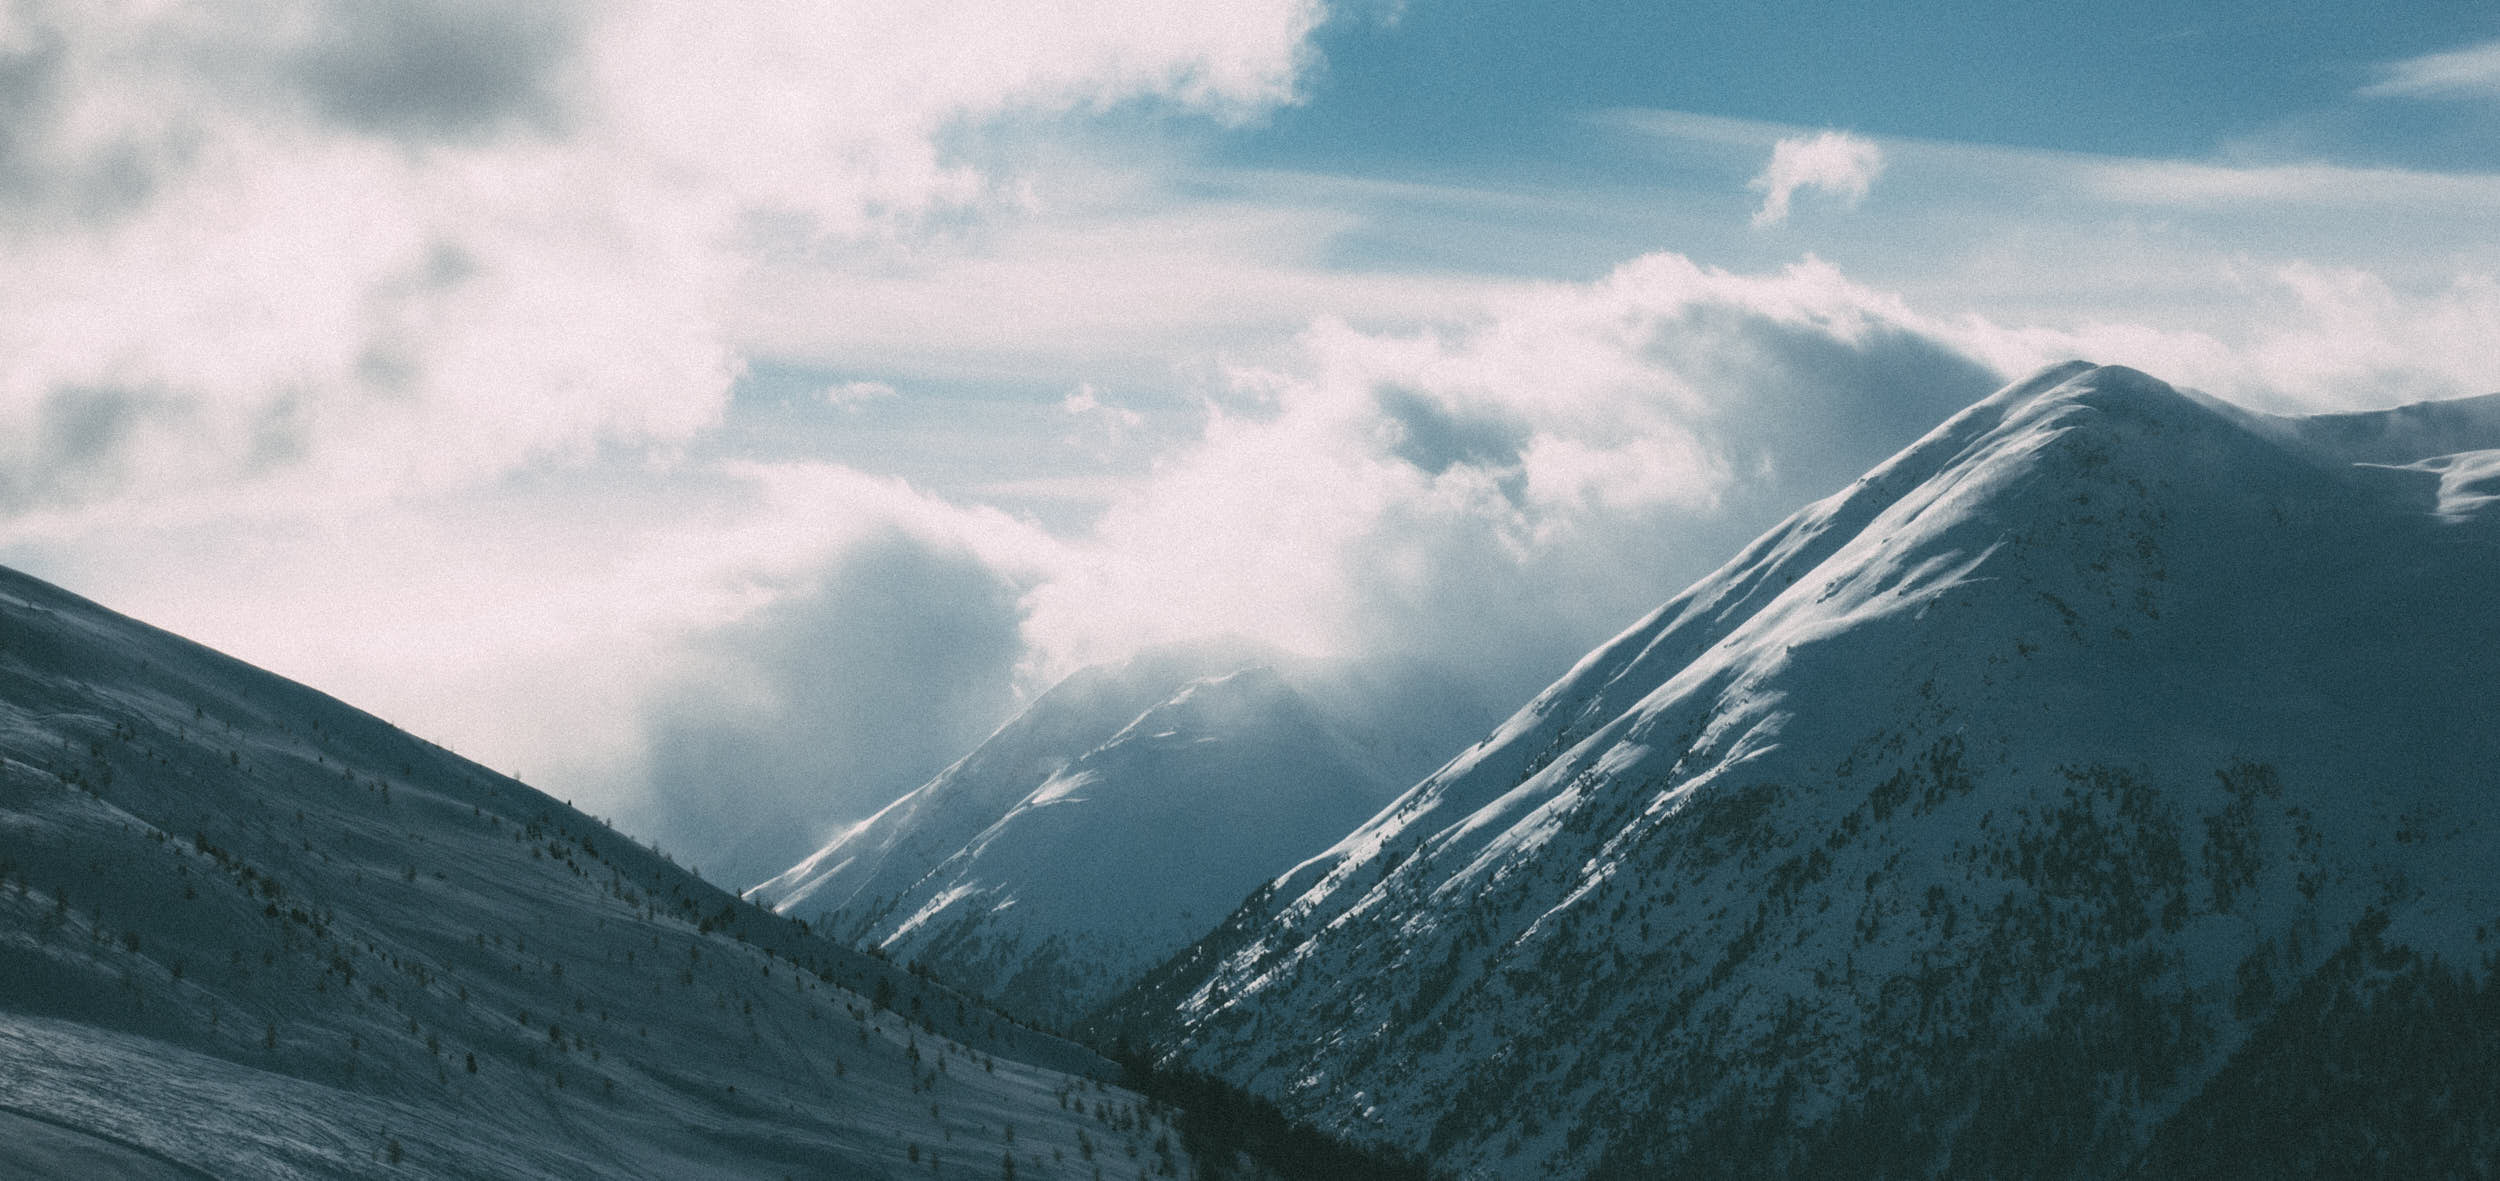 Beautiful landscape travel photography of a mountain with a lot of snow.